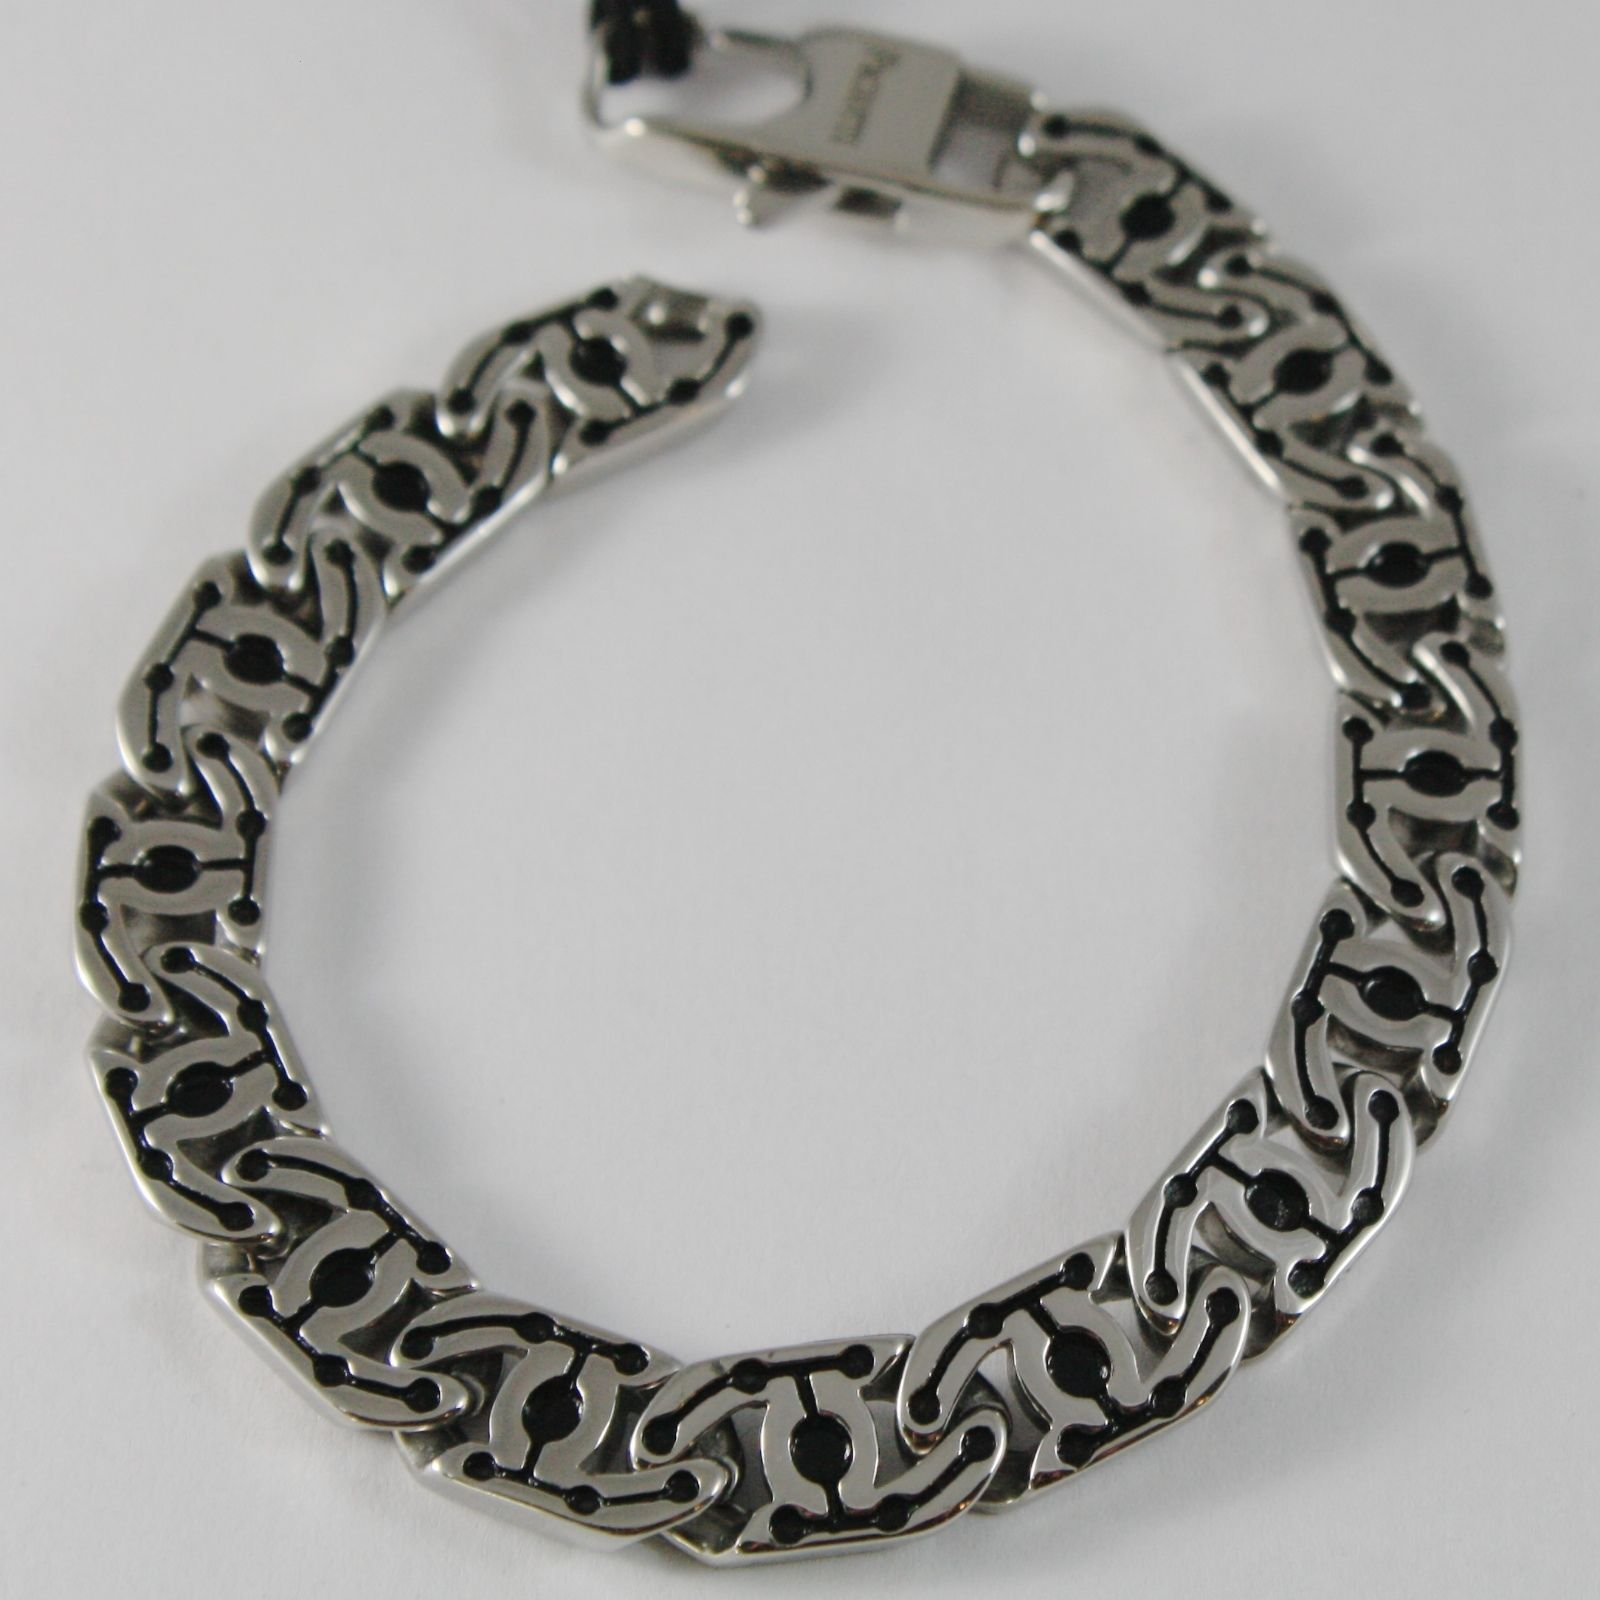 STAINLESS STEEL FLAT GOURMETTE BRACELET SQUARE BLACK MESH 4US BY CESARE PACIOTTI